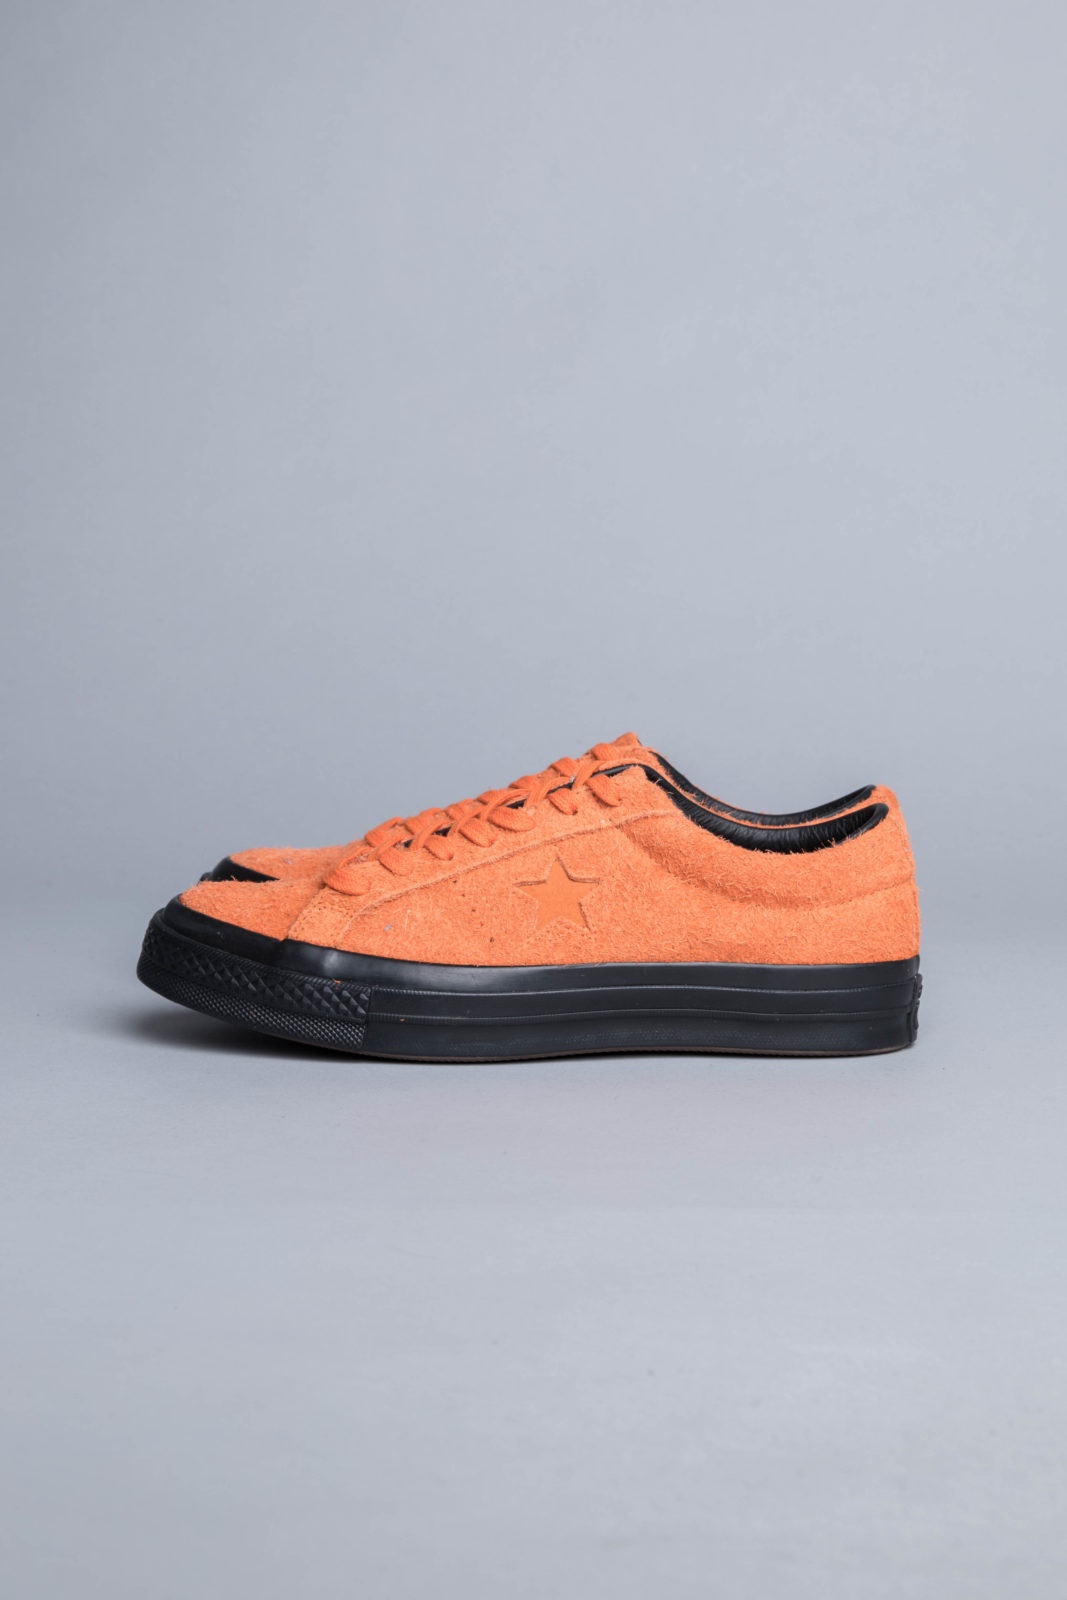 951b1e24f77 Converse One Star OX Orange Tiger • Centreville Store in Brussels